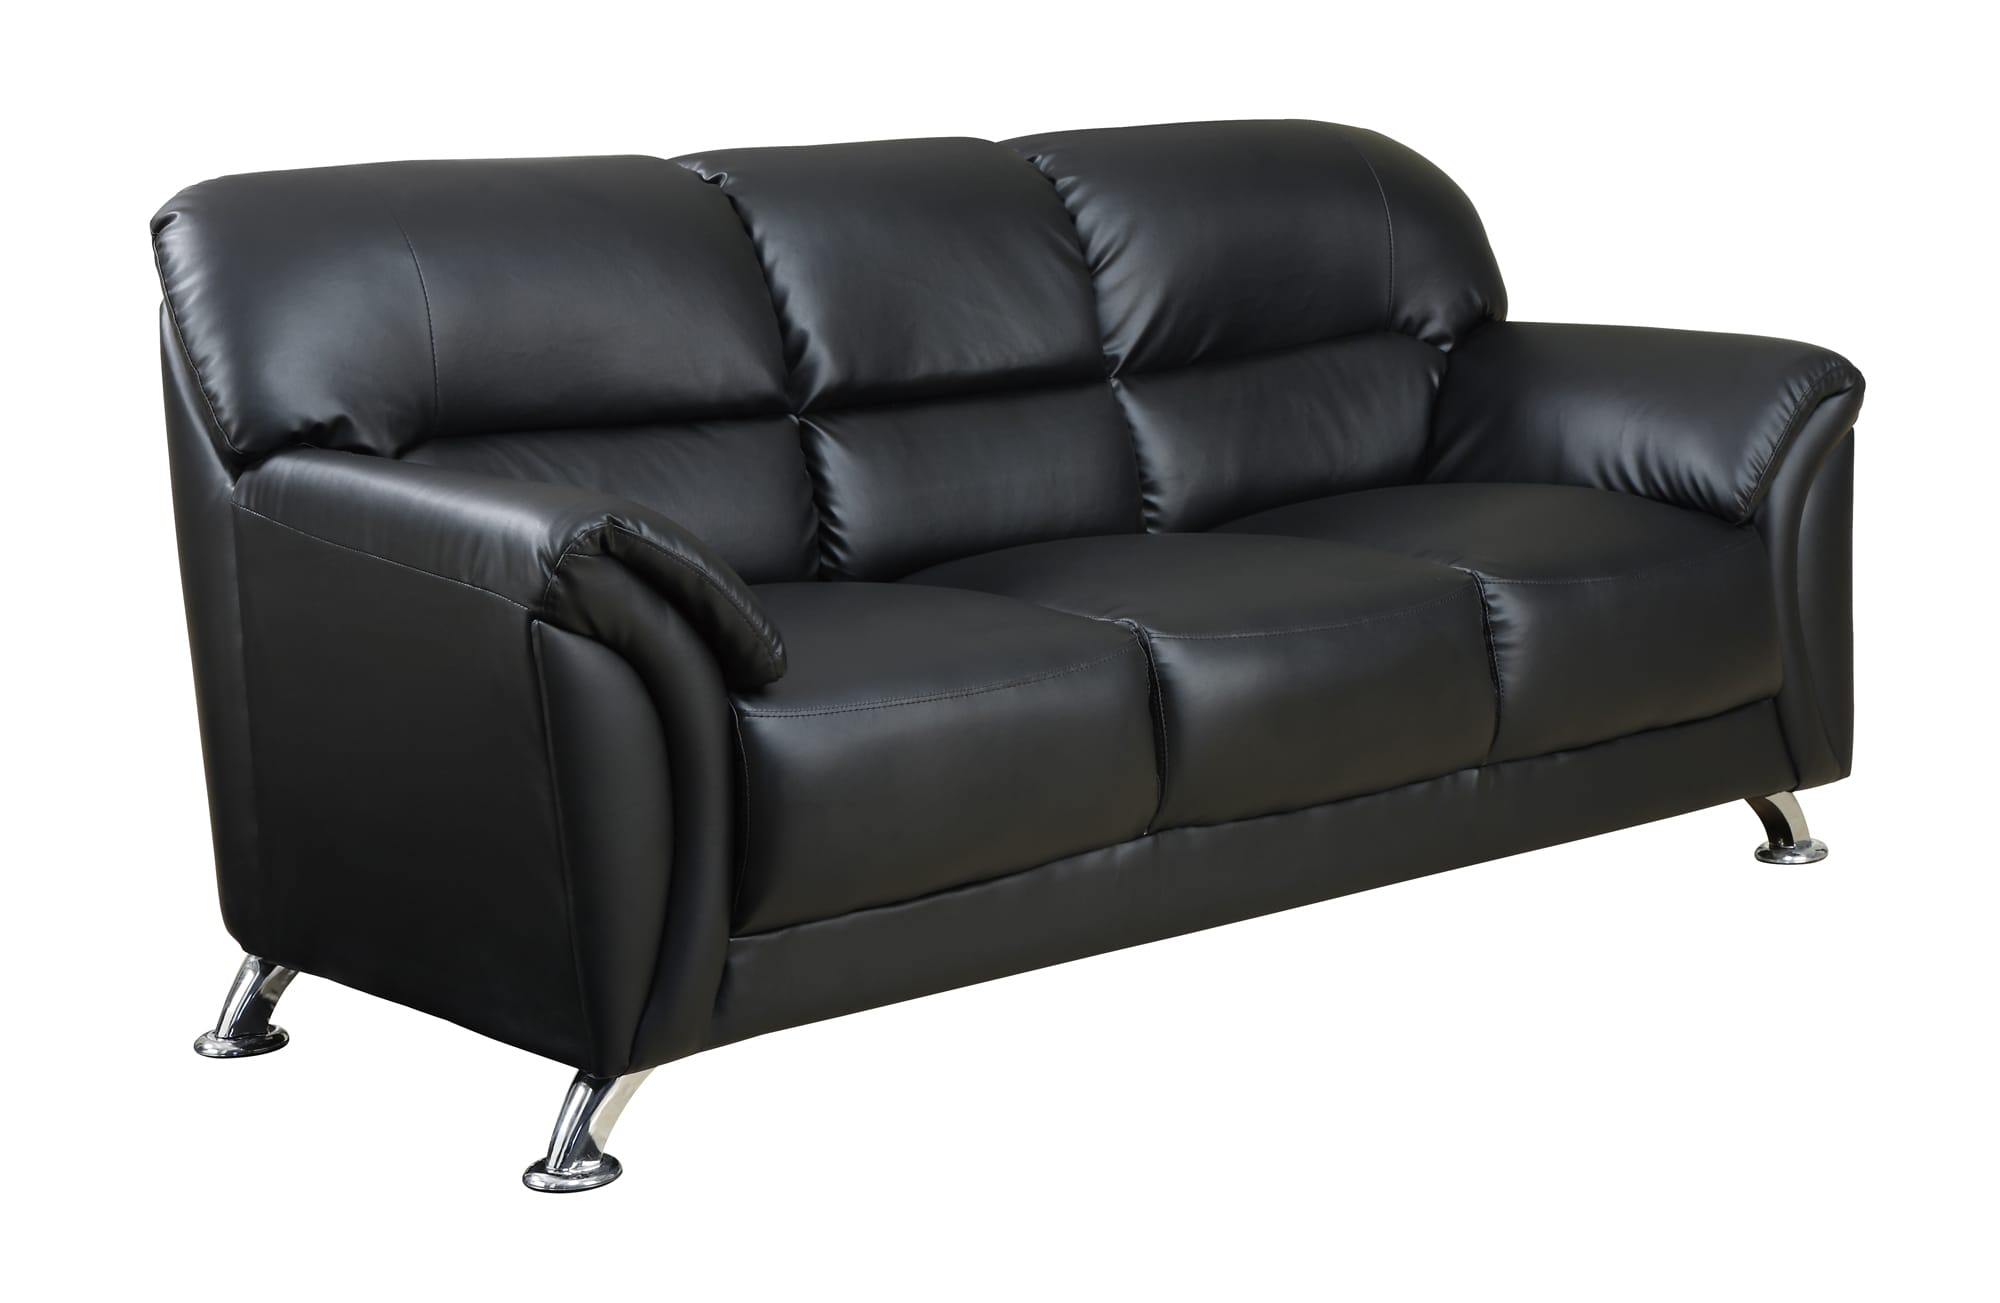 black vinyl futon sofa curved leather u9103 by global furniture